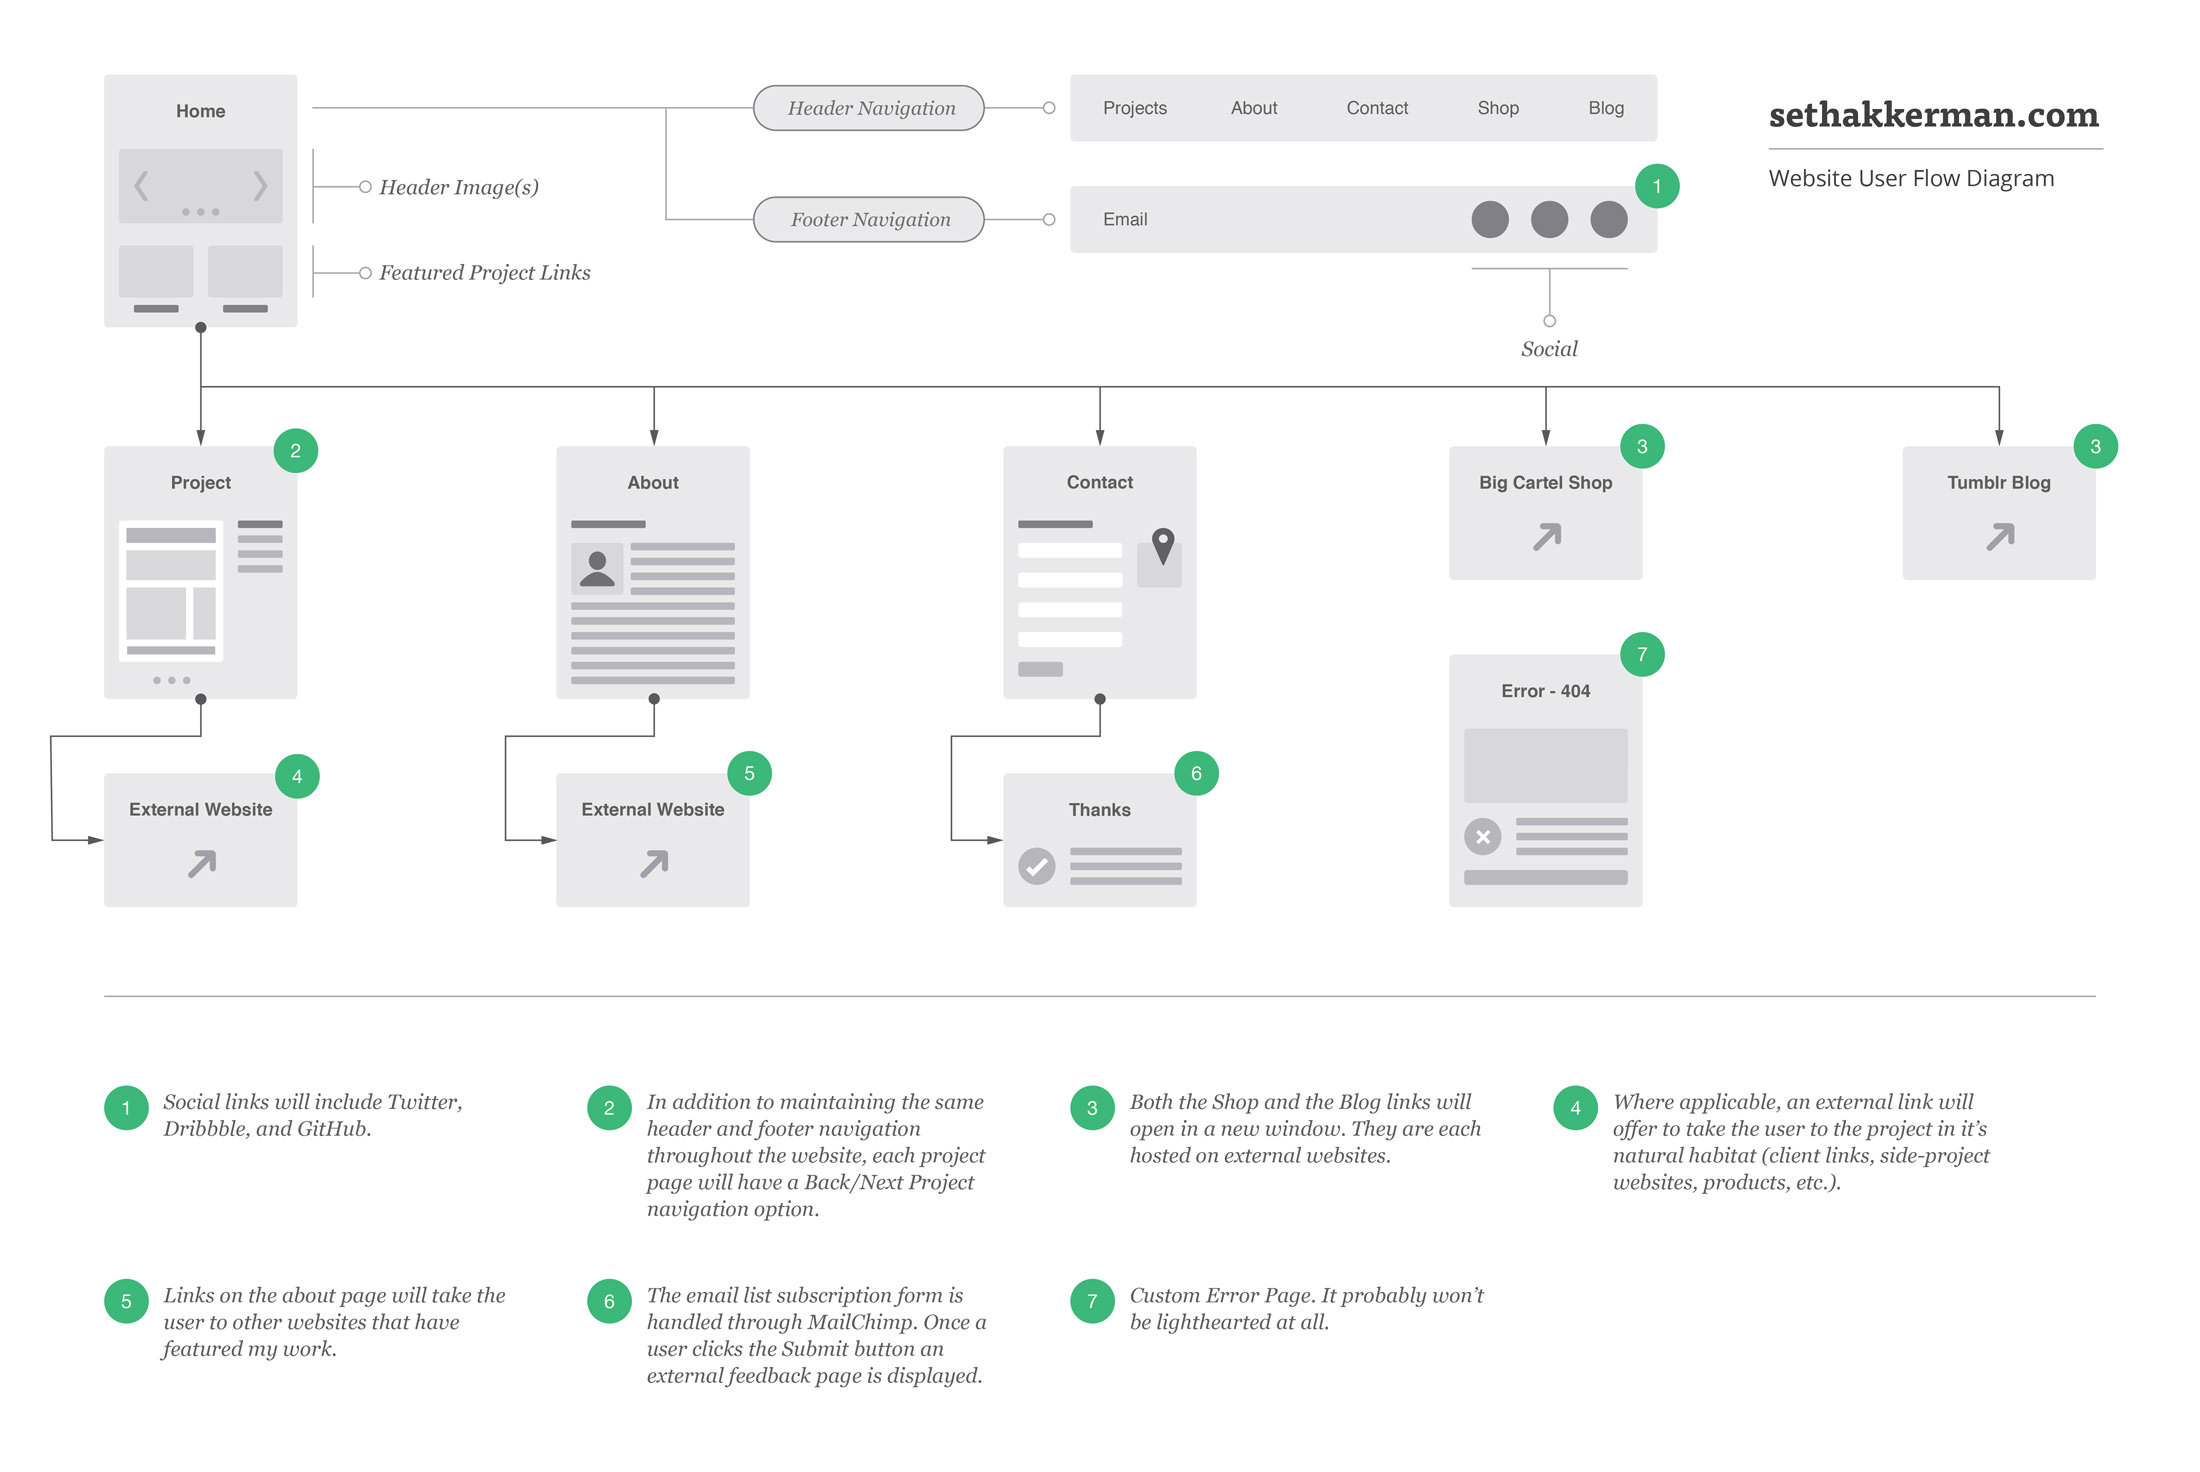 processthe website user flow diagram used in the making of sethakkerman com